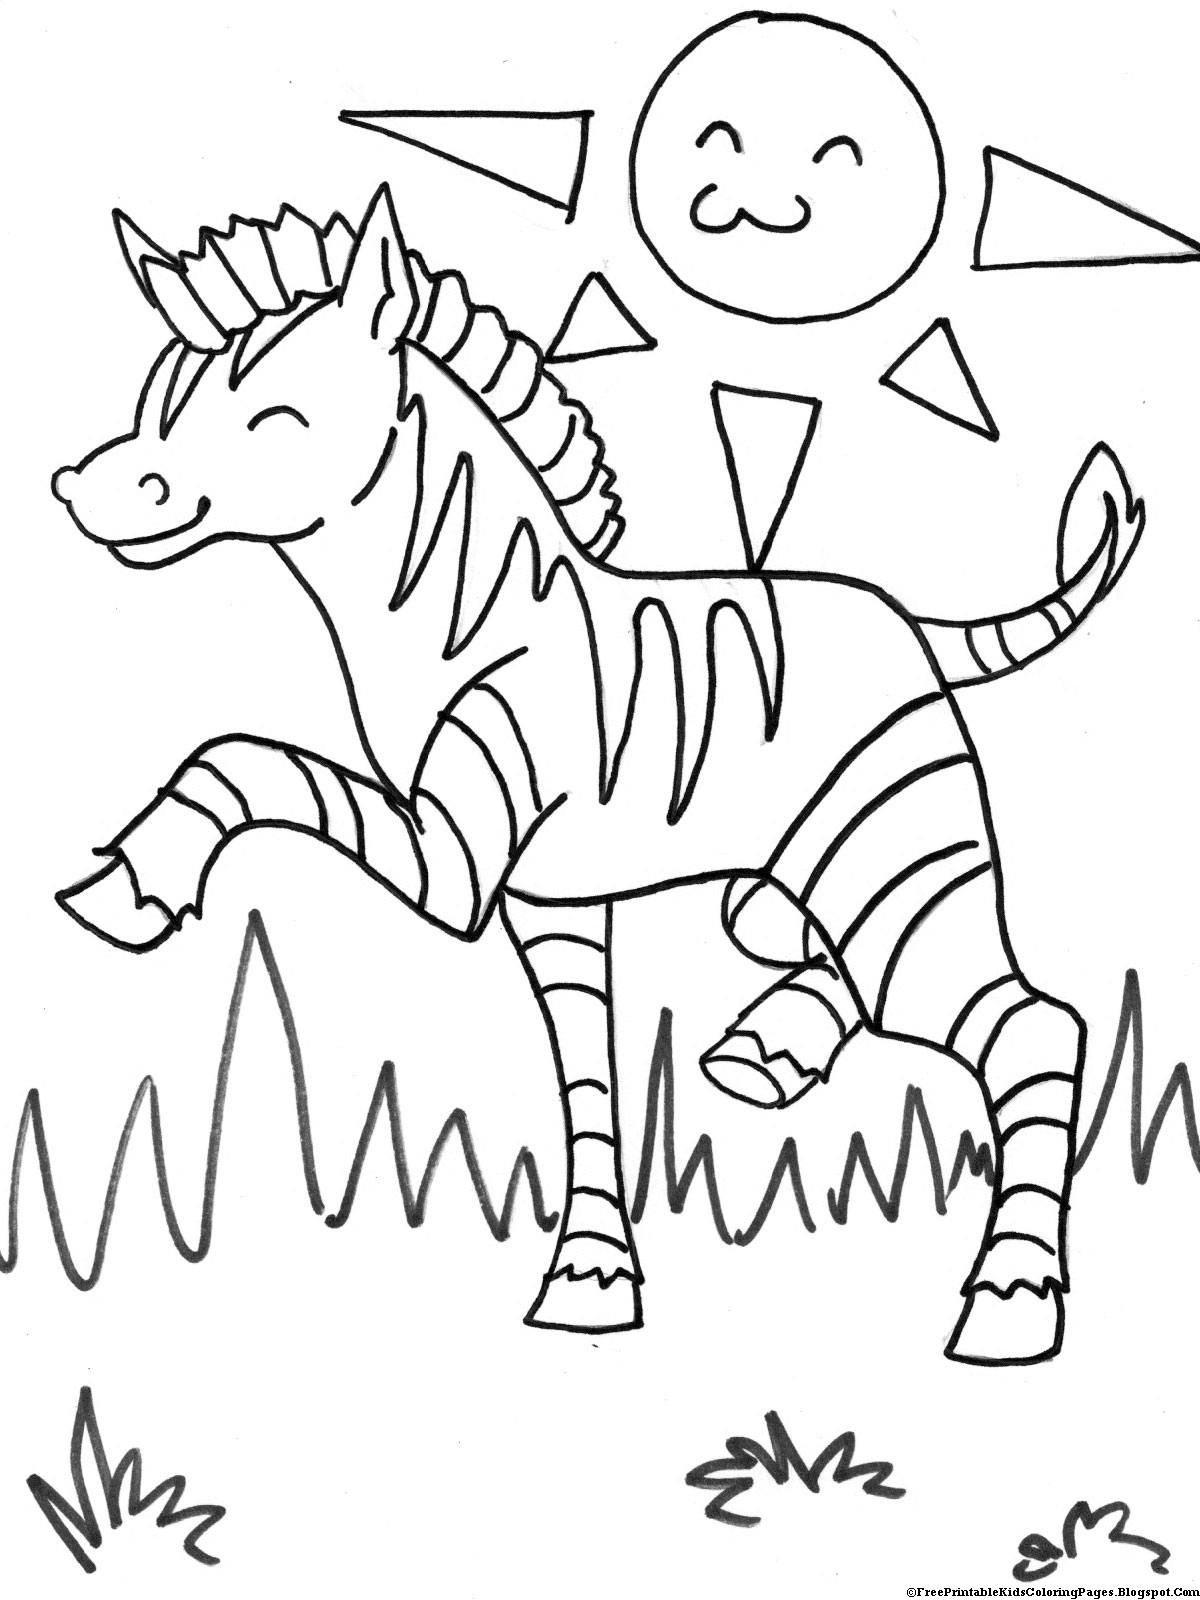 zebra printable coloring pages zebra coloring pages free printable kids coloring pages coloring zebra printable pages